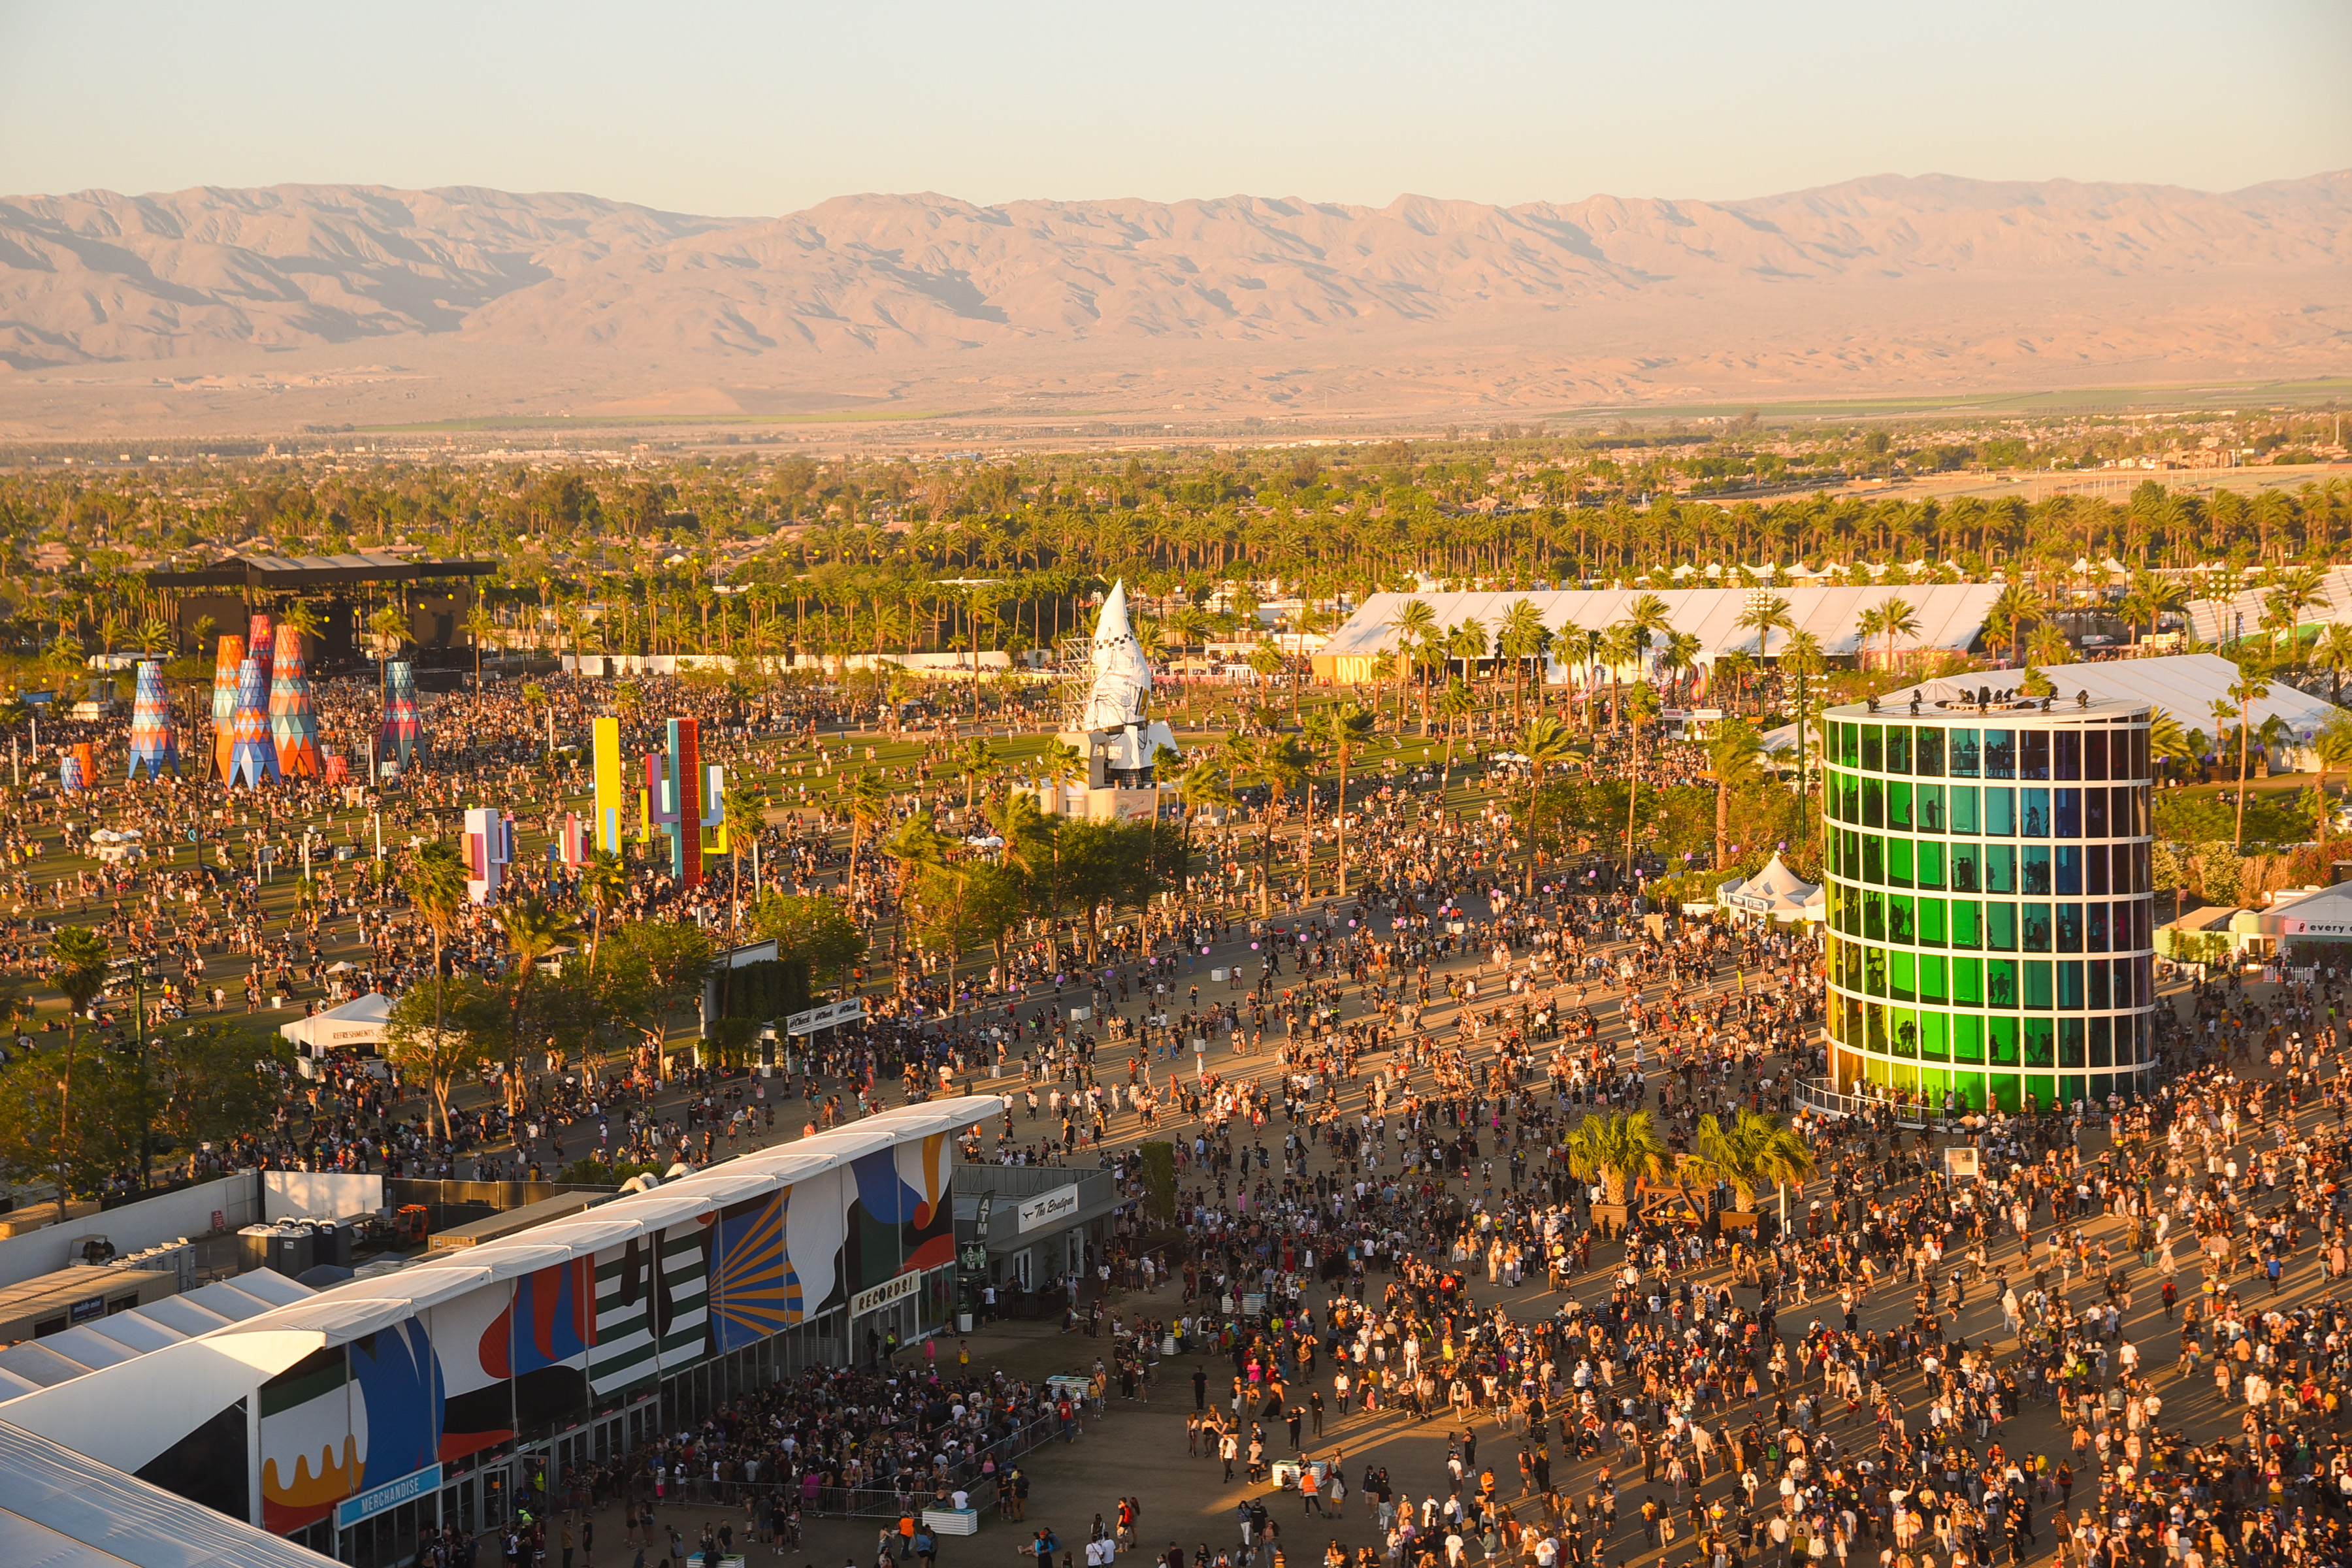 People attend the 2019 Coachella Valley Music And Arts Festival in Indio, California.